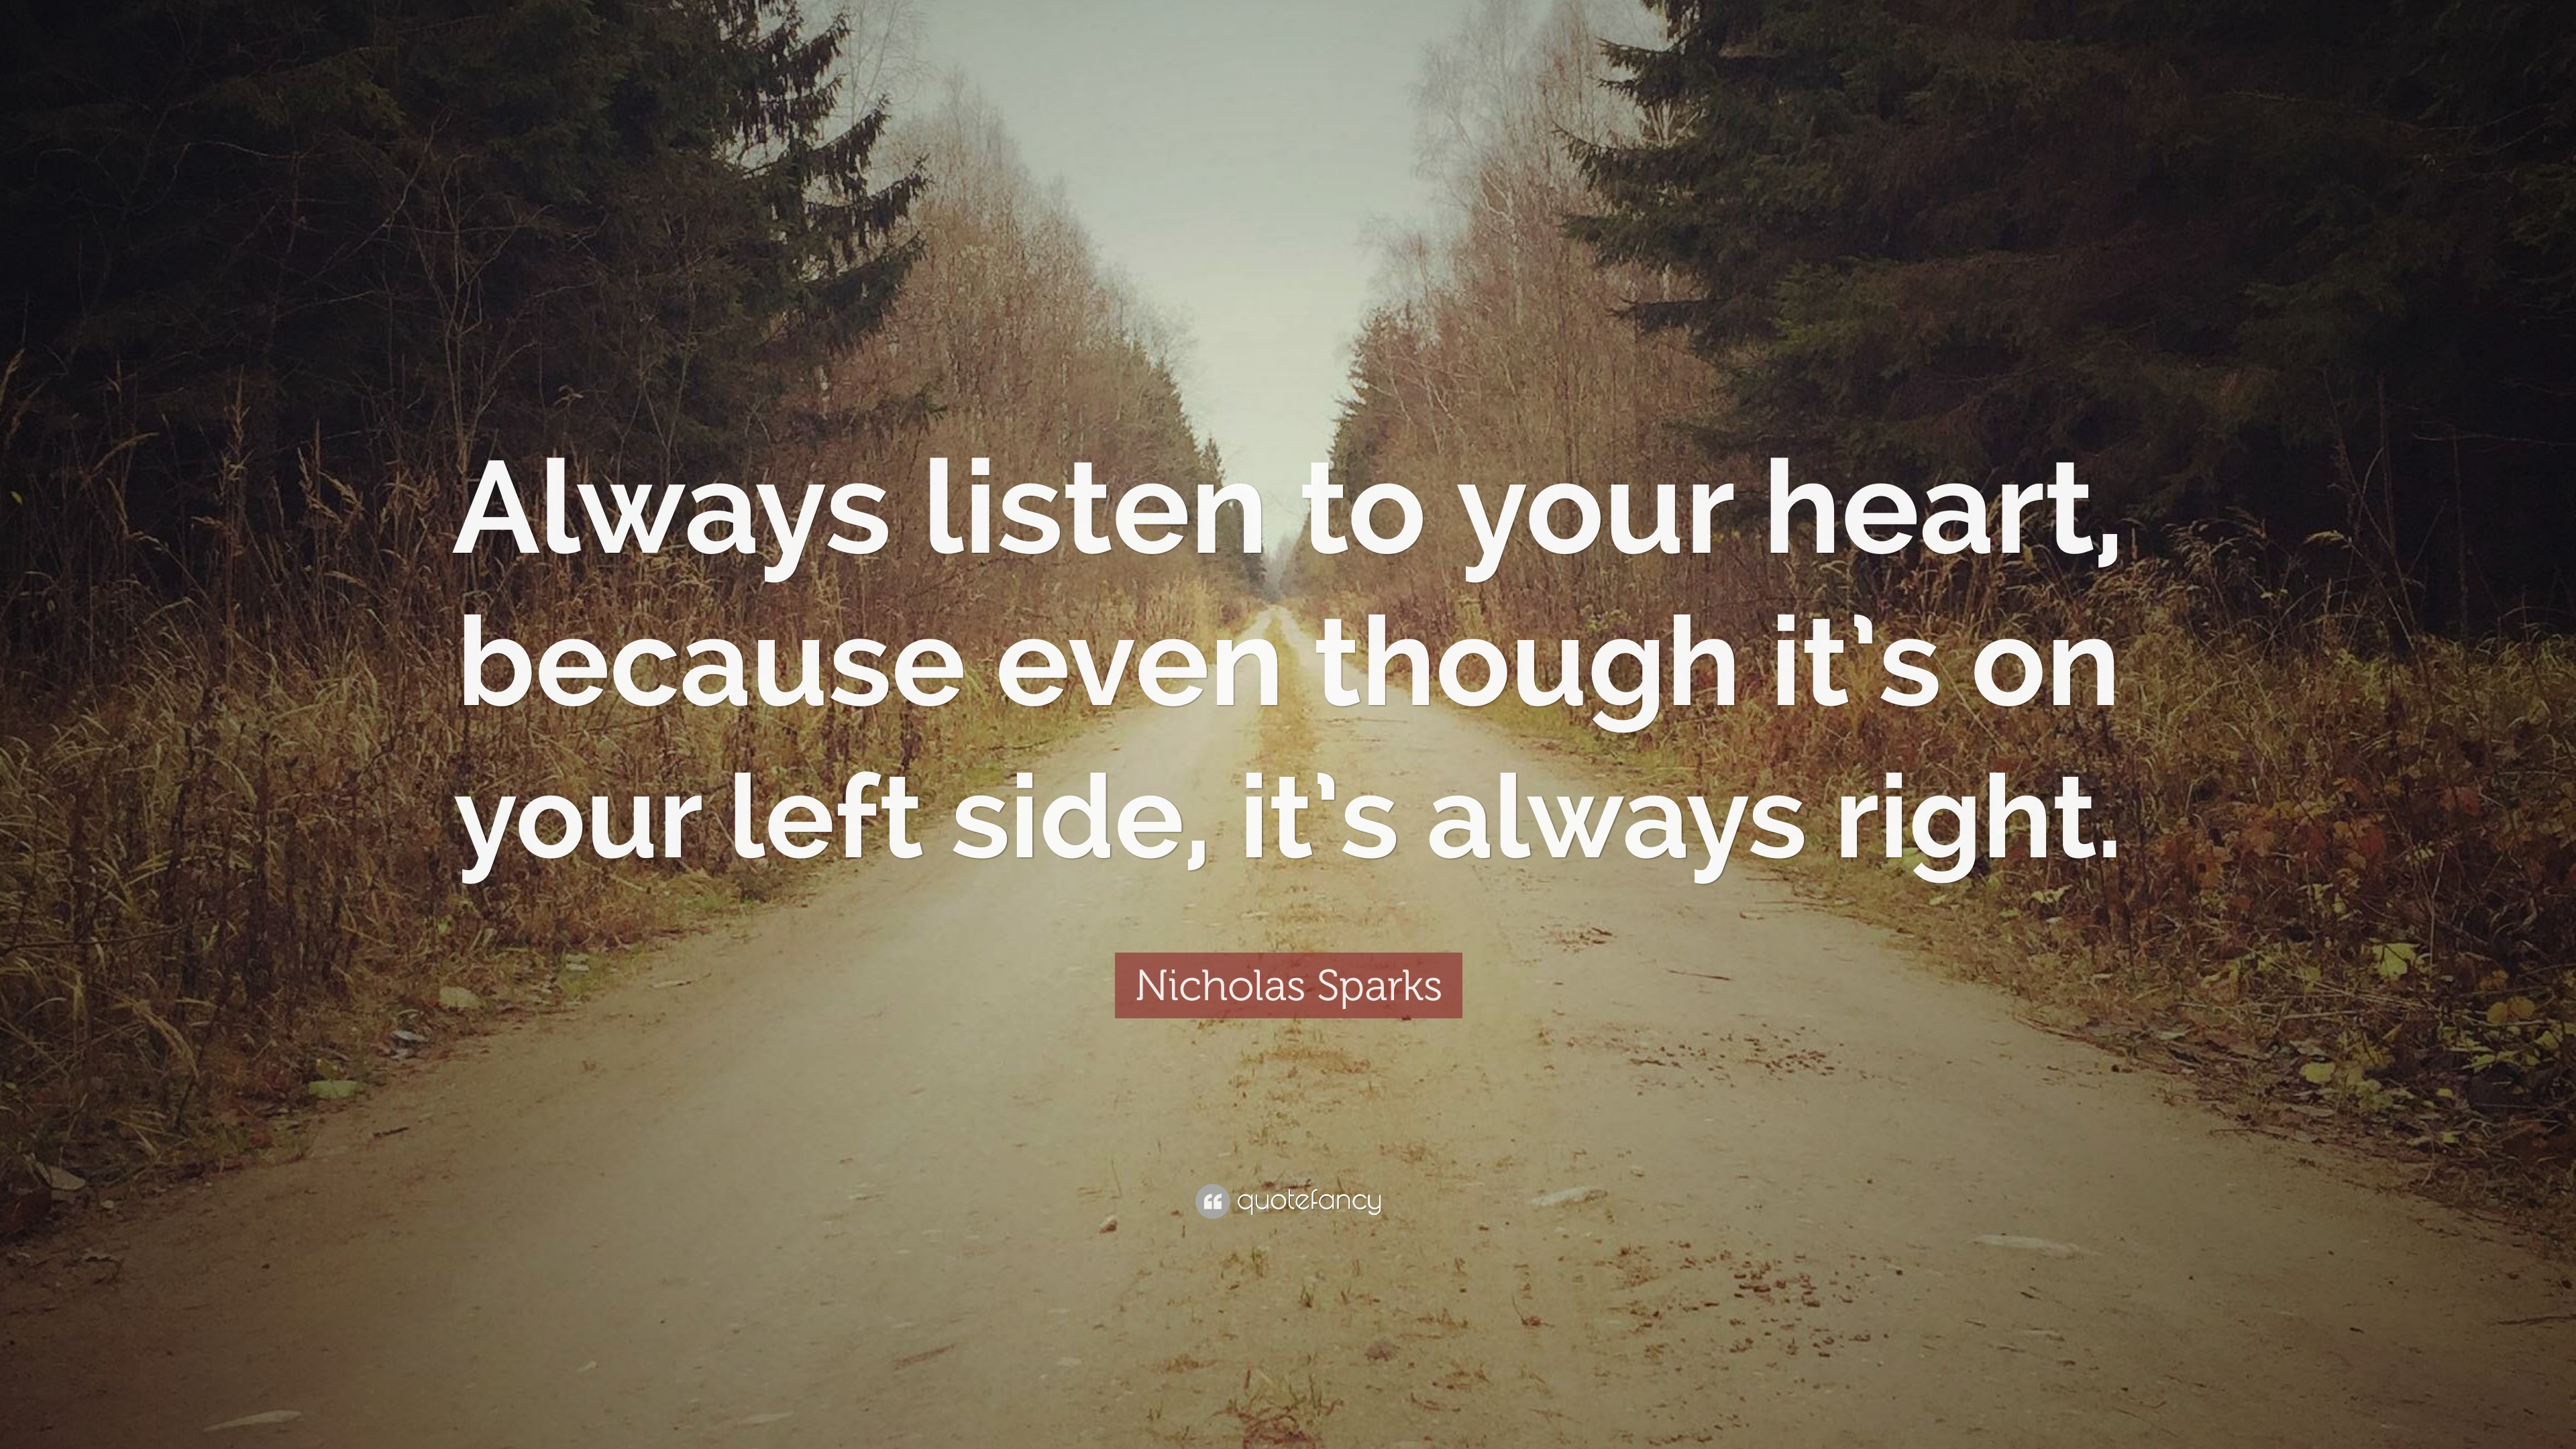 Charmant Nicholas Sparks Quote: U201cAlways Listen To Your Heart, Because Even Though  Itu0027s On